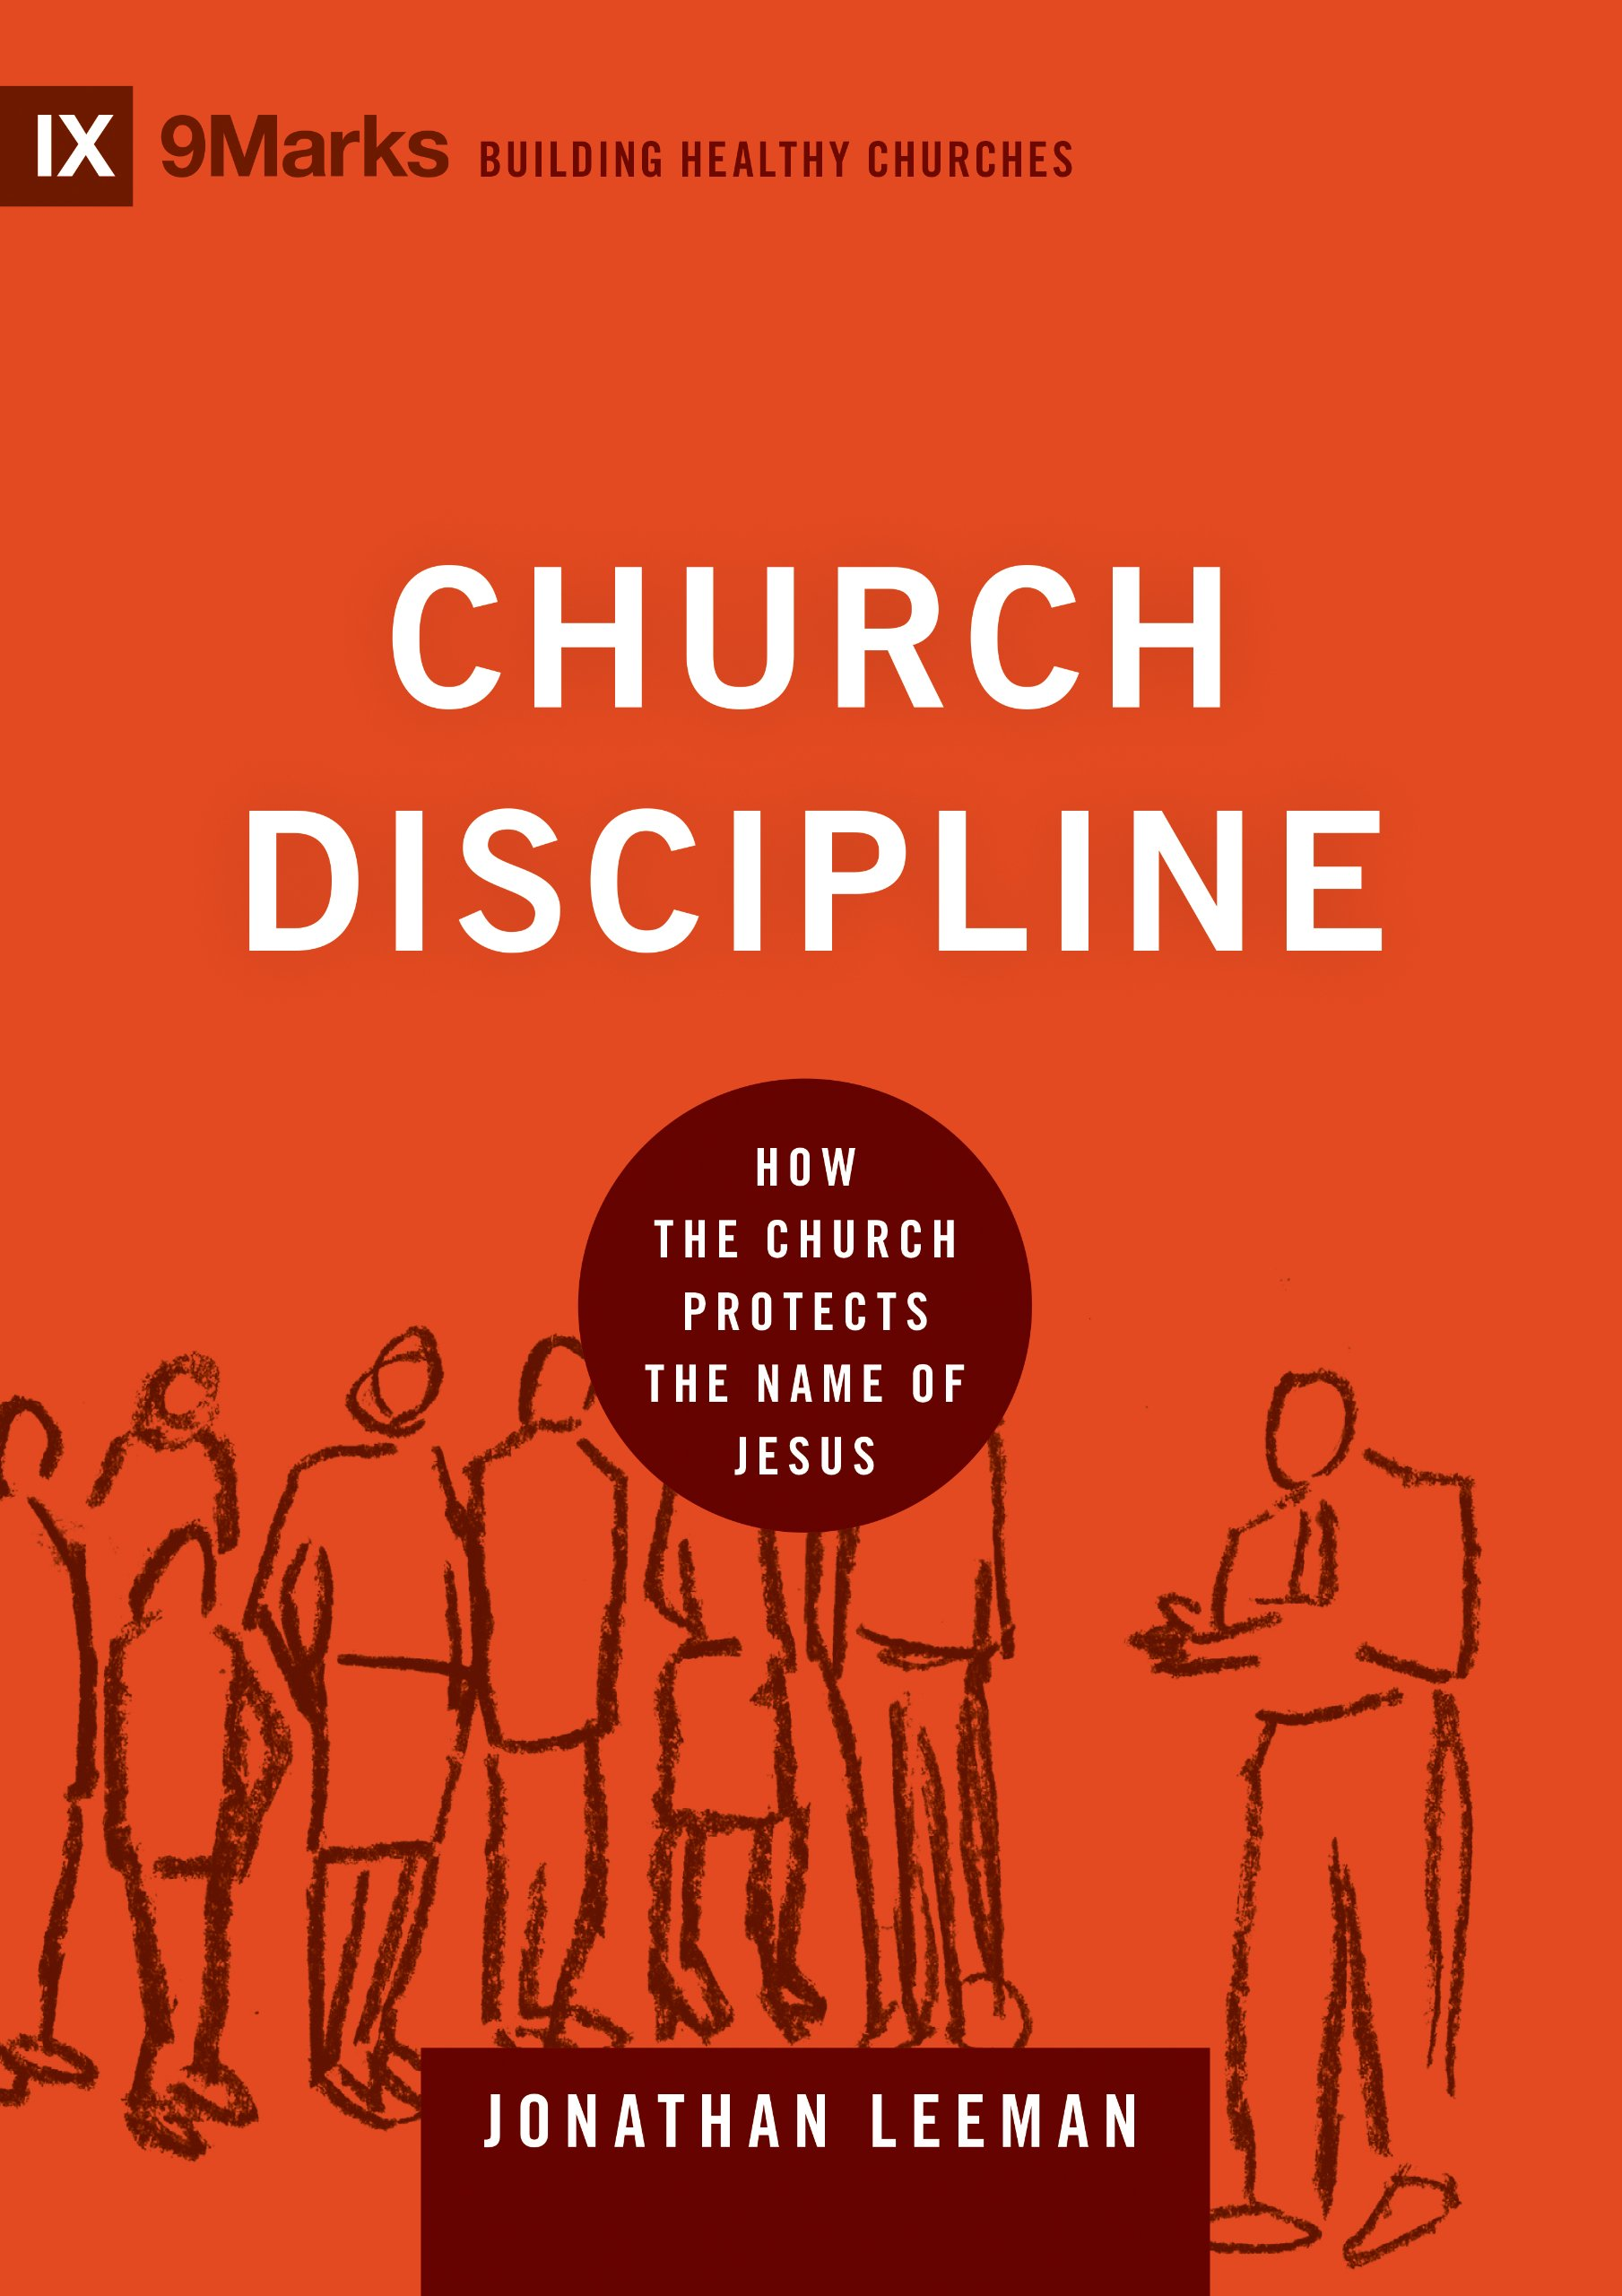 church discipline how the church protects the name of jesus